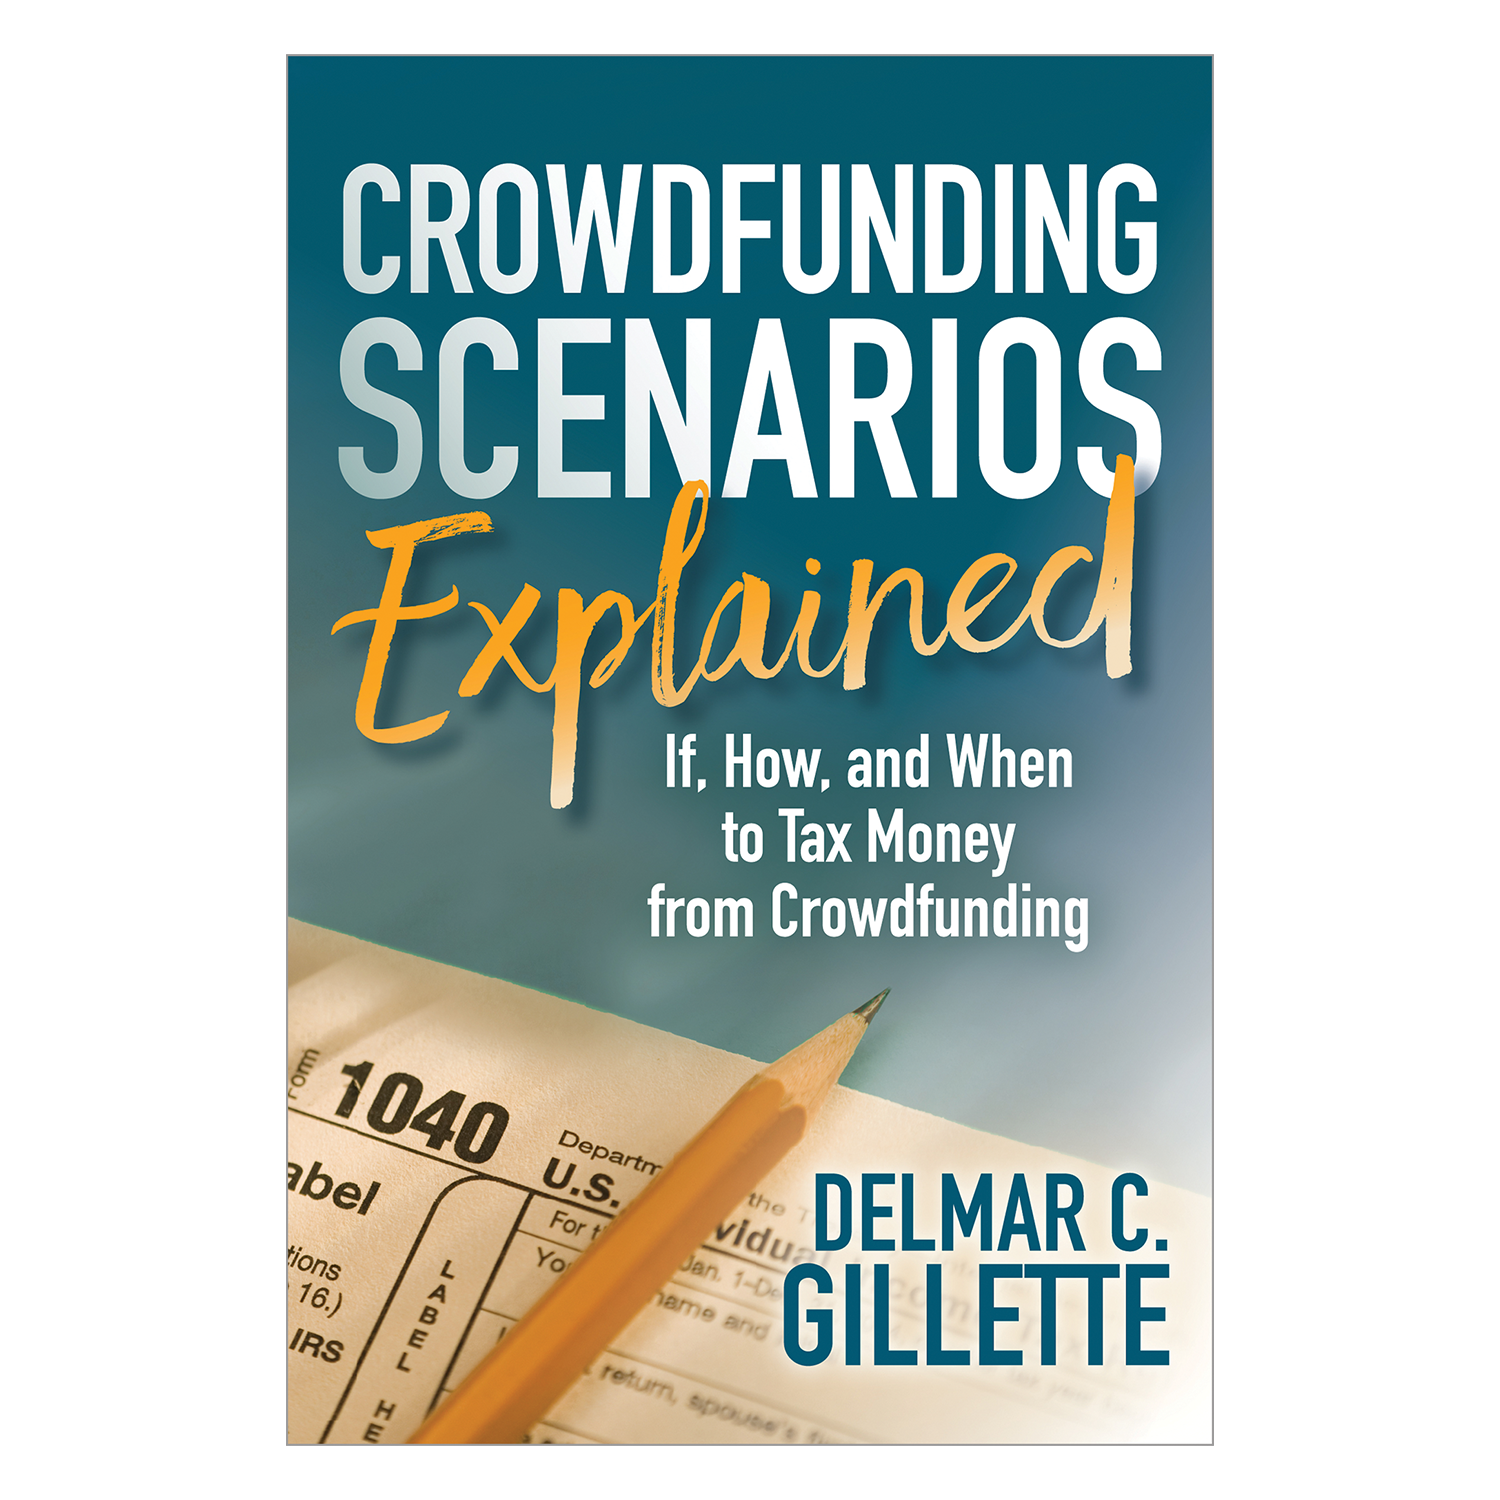 Crowdfunding Scenarios Explained (2018) - #4776